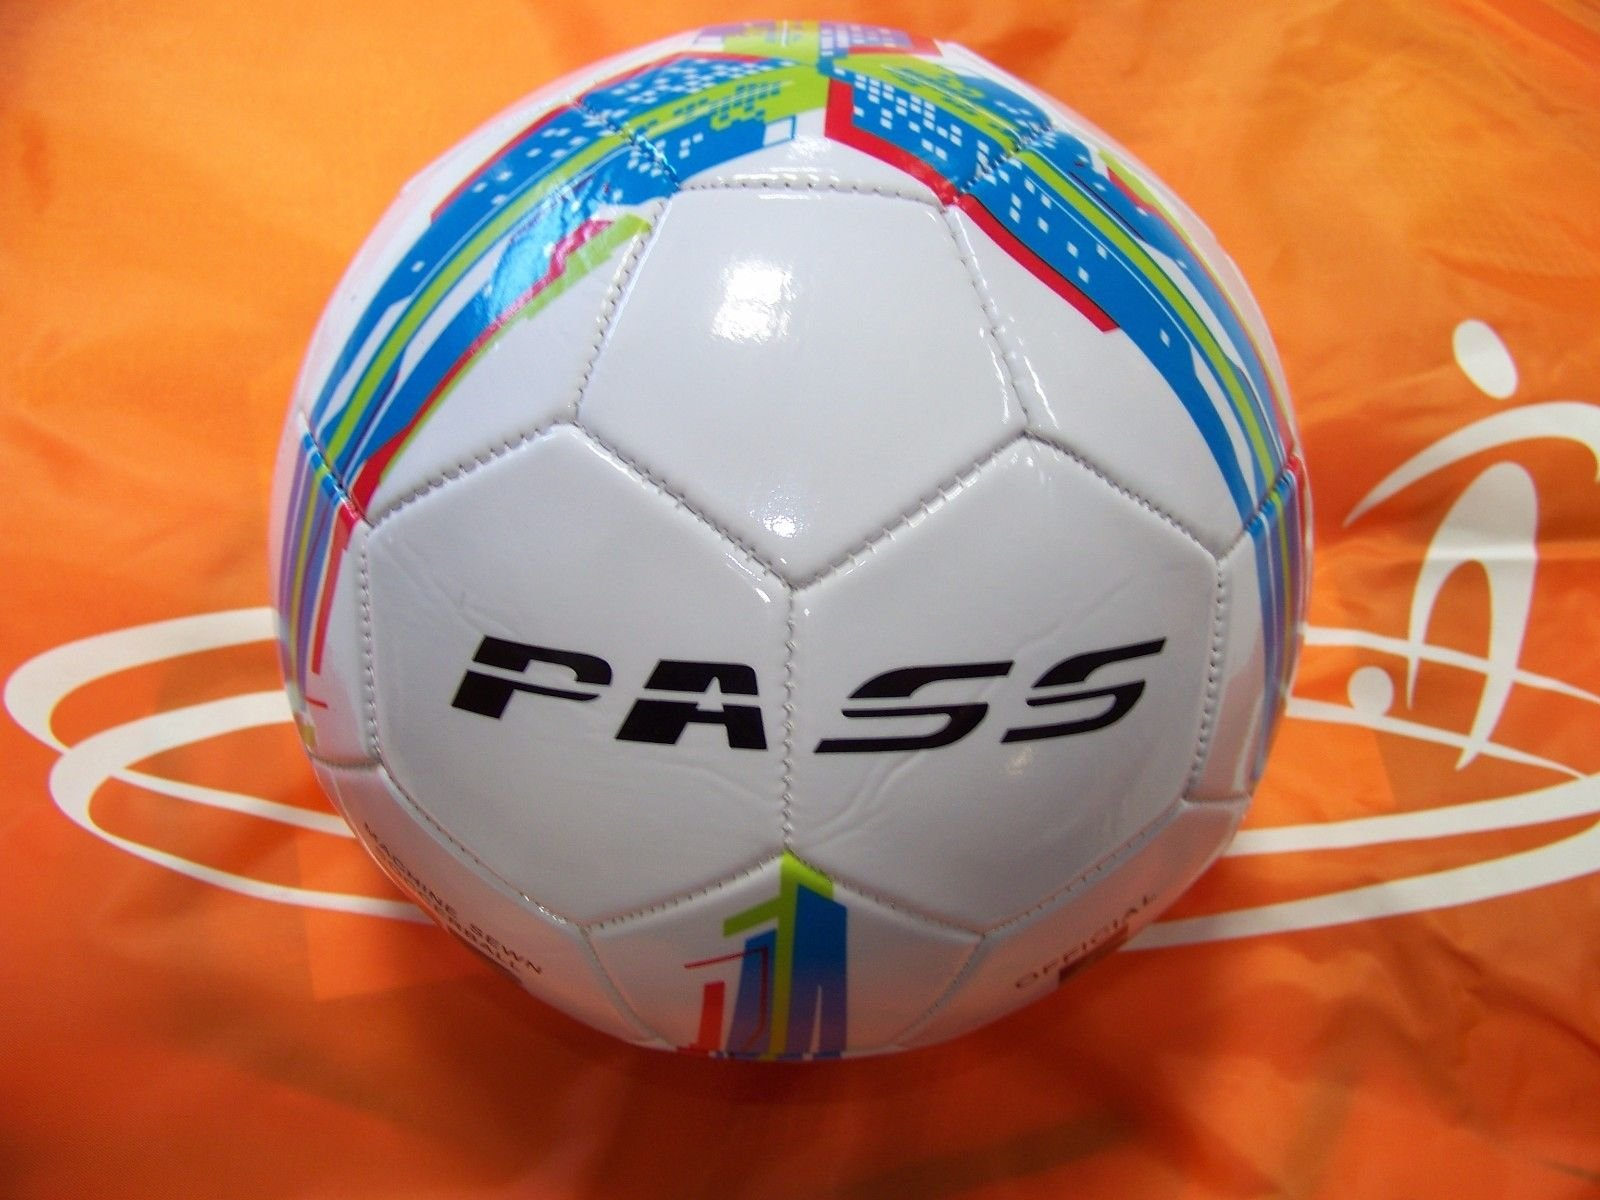 50 CT - Size 5, 32 Panel Machine Sewn Soccer Balls. Official Sizes & Weight. COMES WITH FREE 6'' PUMP (Red, Green & Blue)